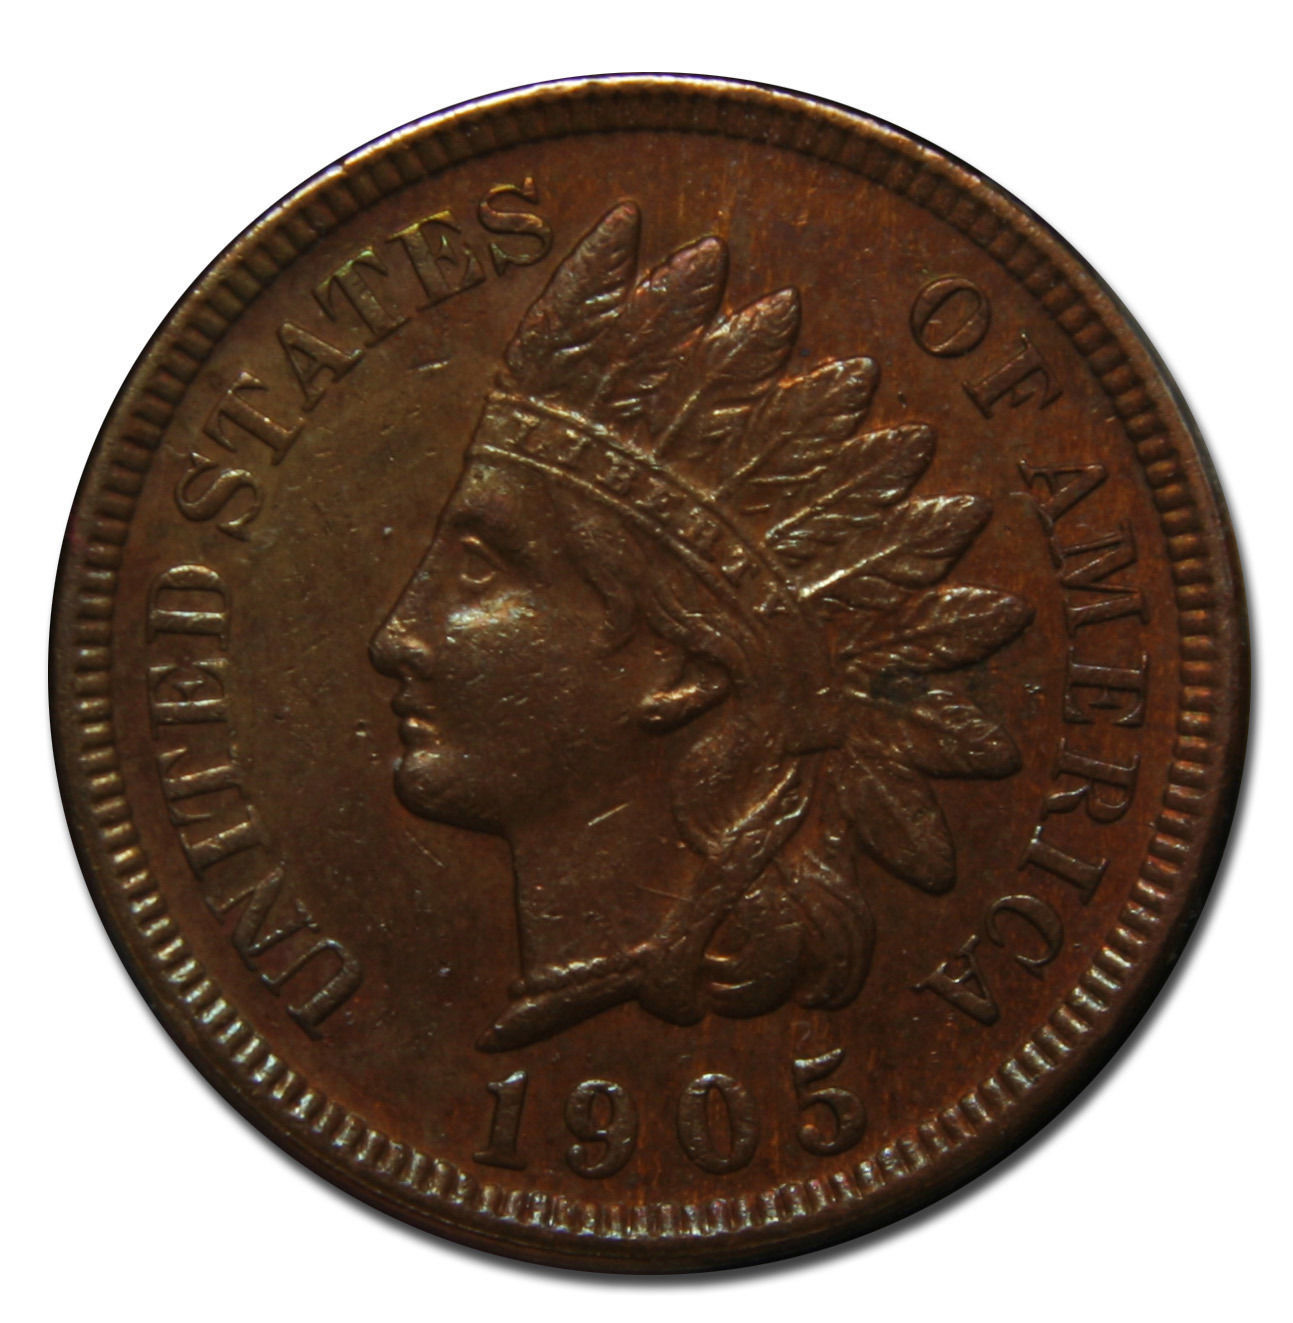 1905 Indian Head Penny / Cent Coin Lot# MZ 3594